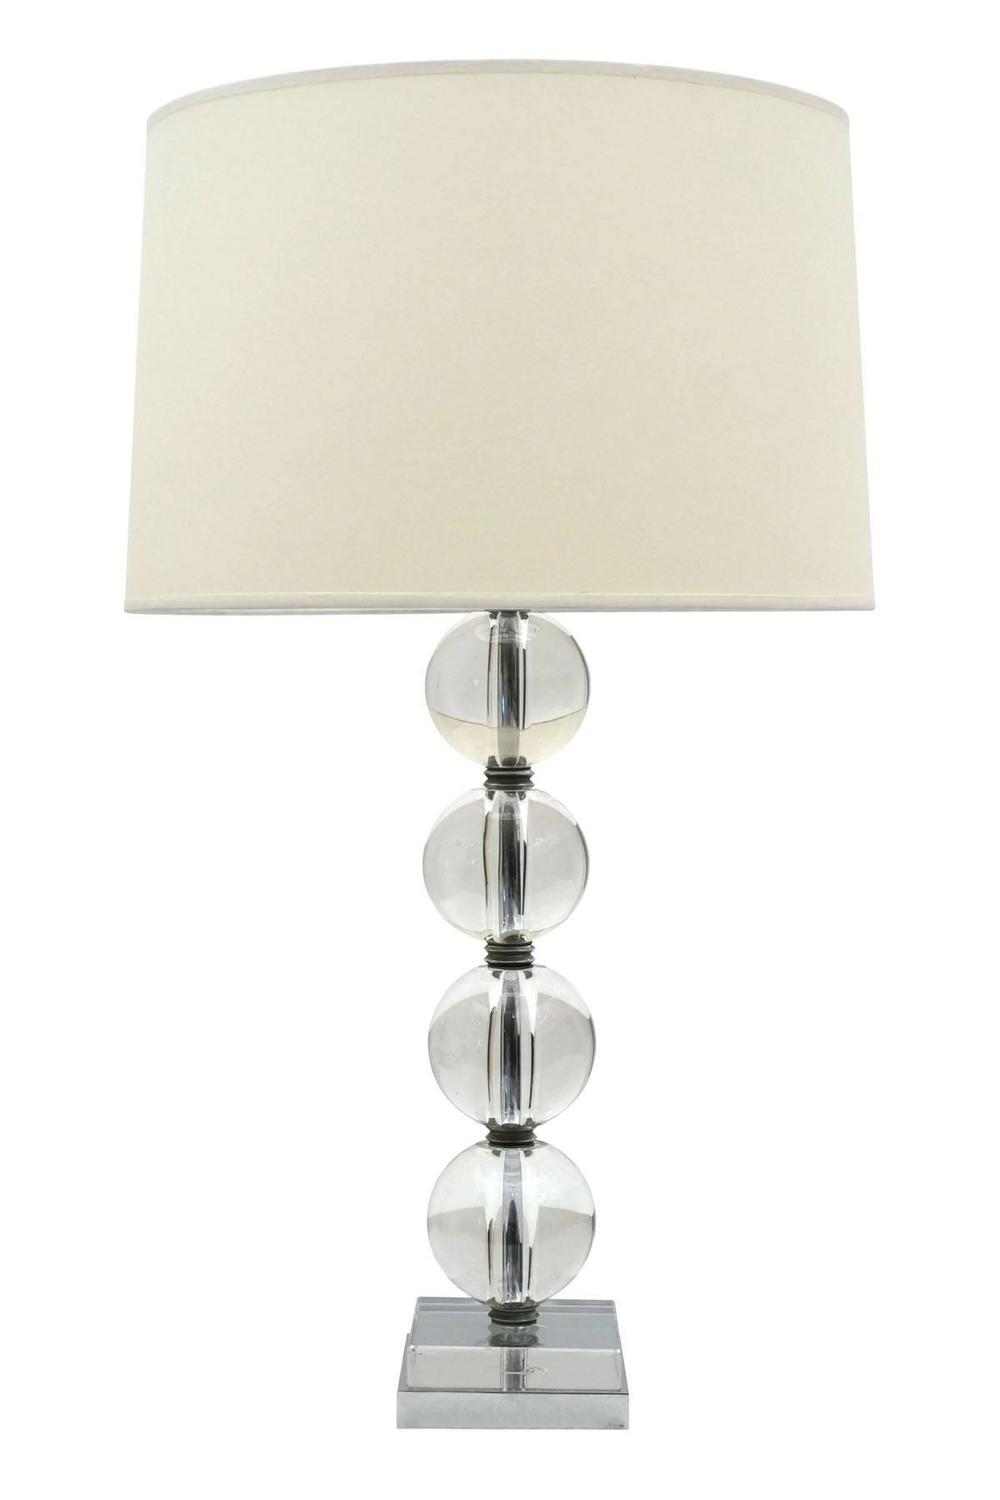 1970 39 s glass ball table lamp on chrome base france for. Black Bedroom Furniture Sets. Home Design Ideas